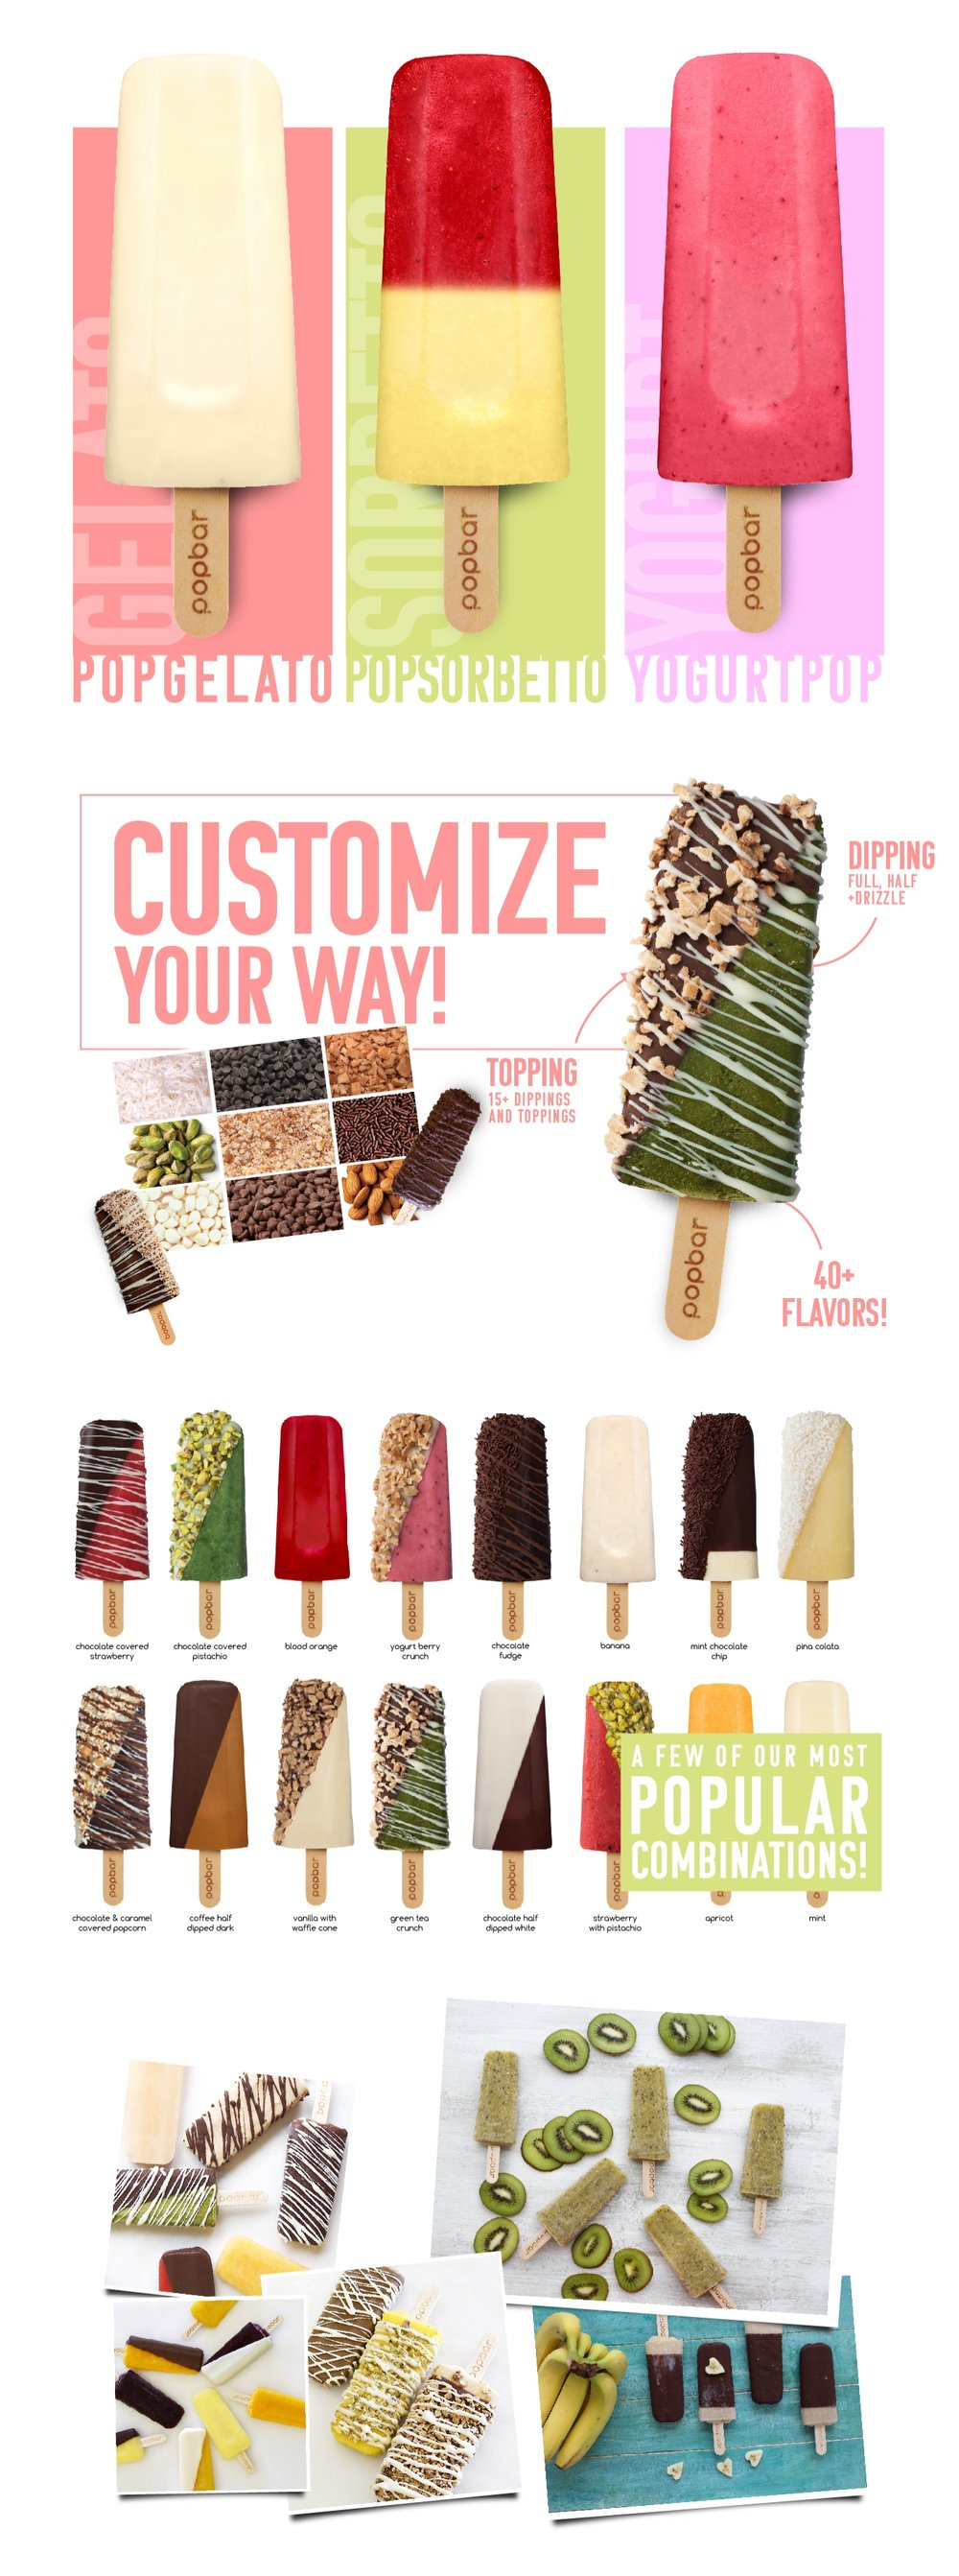 Popbars Handcrafted Gelato on a Stick.jpg